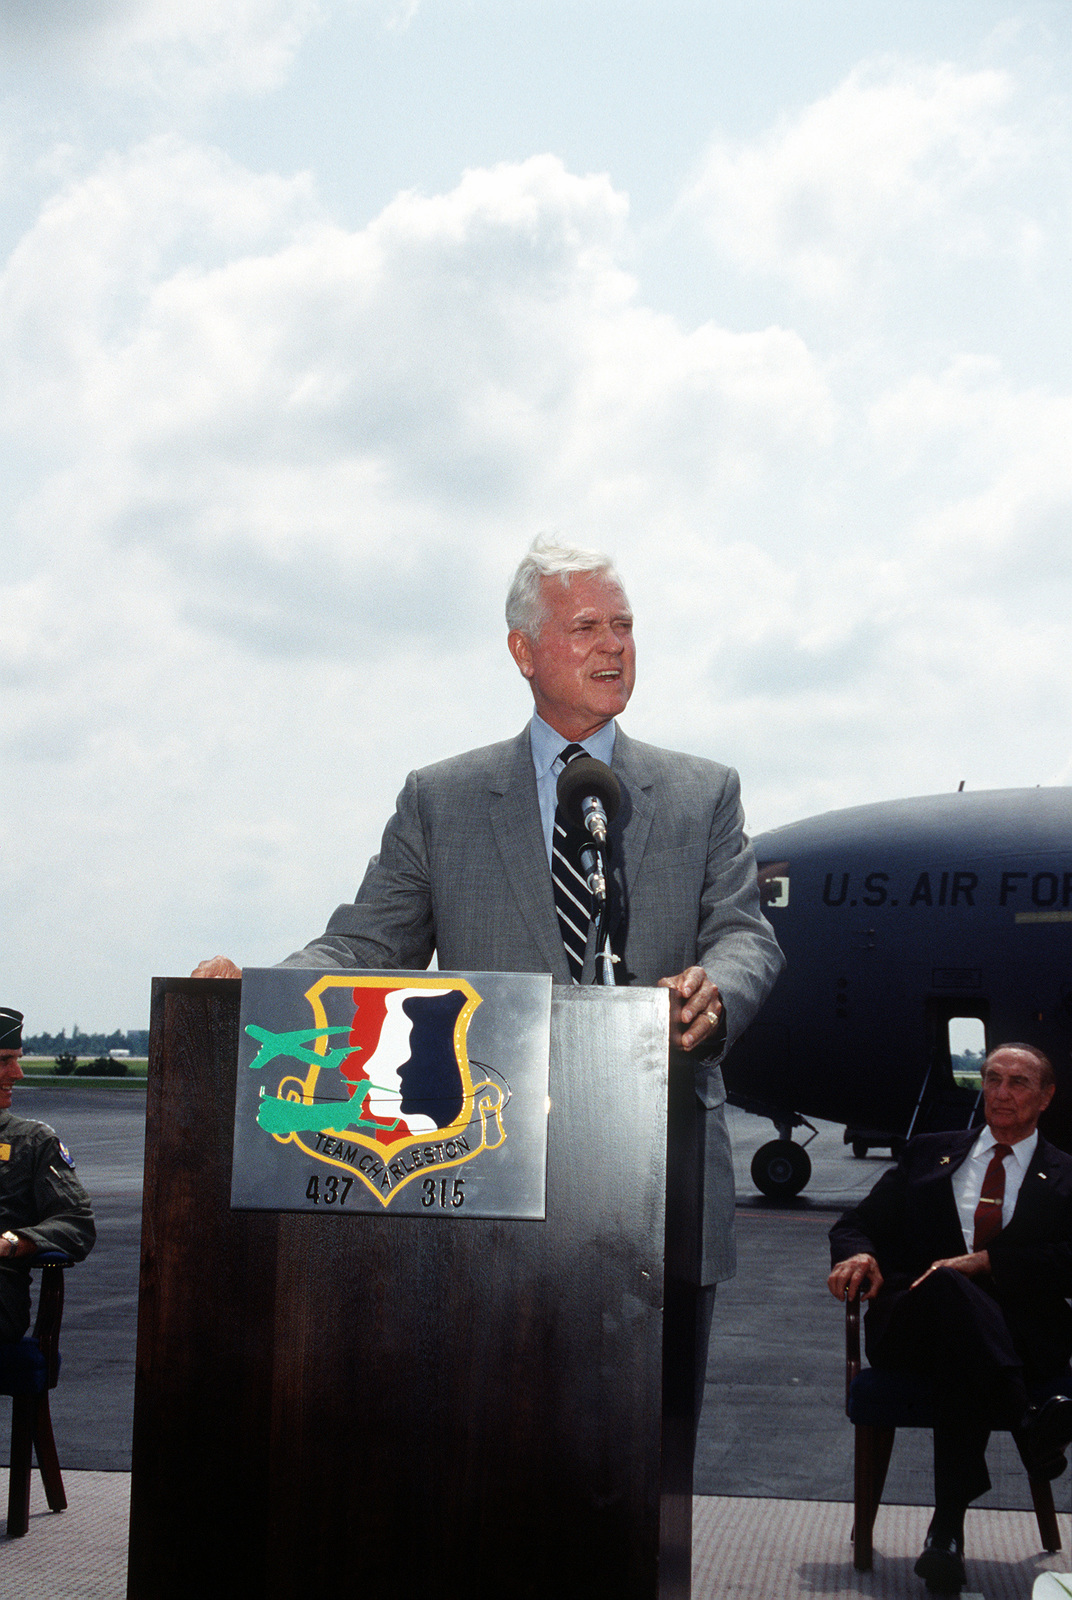 U.S. Senator, Ernest Hollings, D-SC, at the lectern during the turnover ceremonies for the first C-17 Globemaster III being delivered to the Air Force